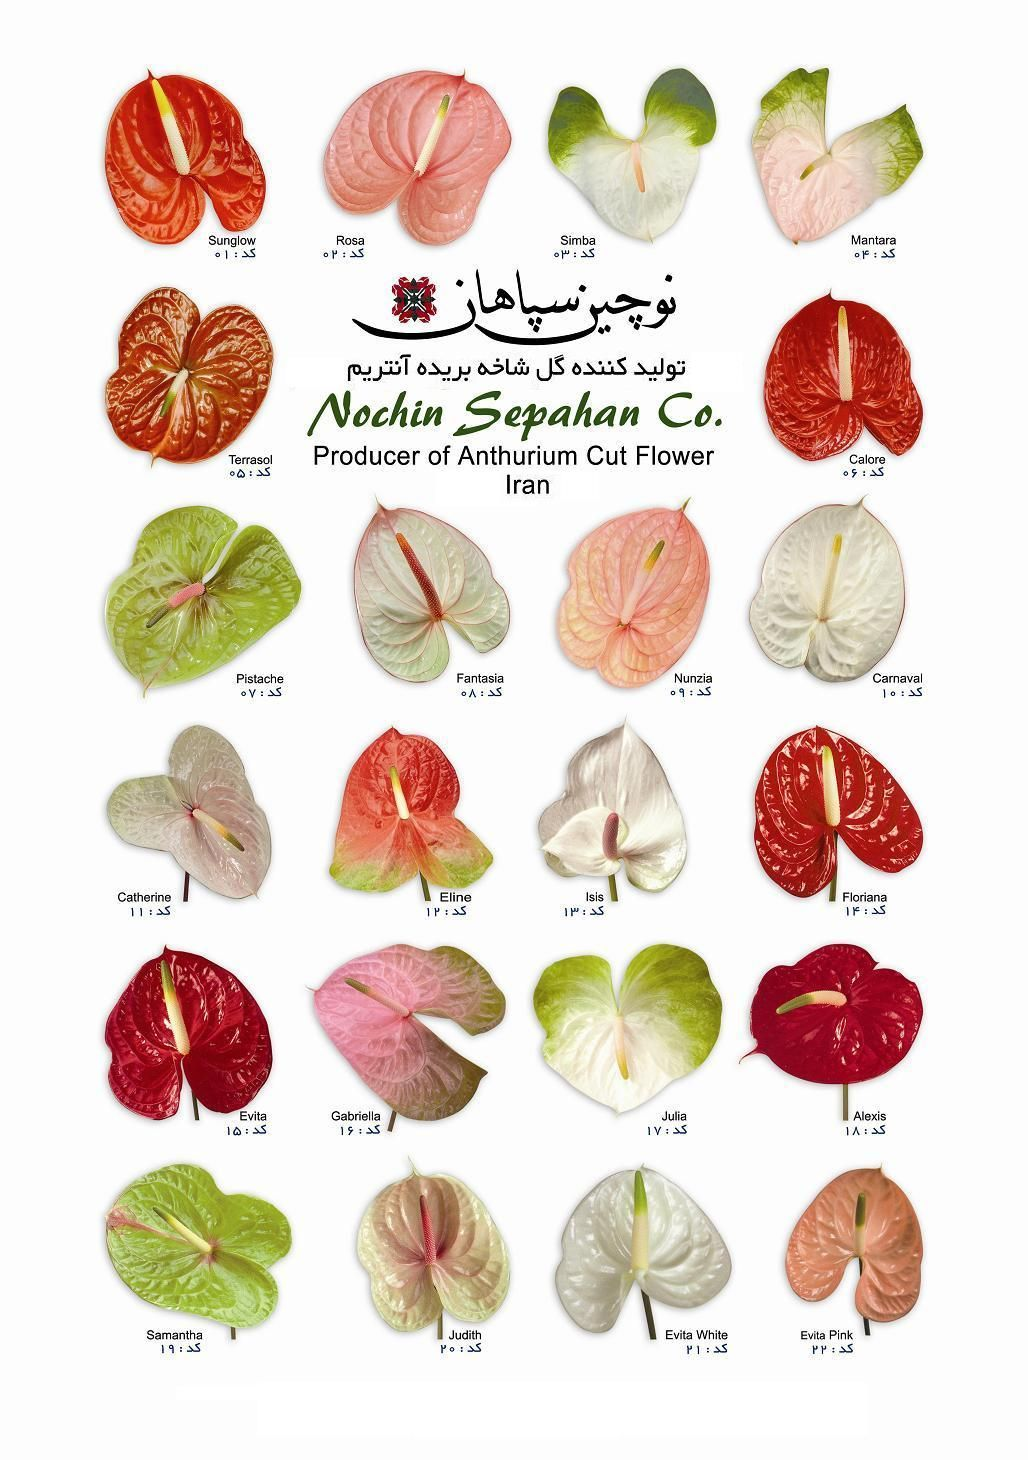 Anthurium I Will Have To Wait If Until My Anthurium Blooms Before I Know Which Red One It Is Anthurium Flower Anthurium Wedding Flowers Roses